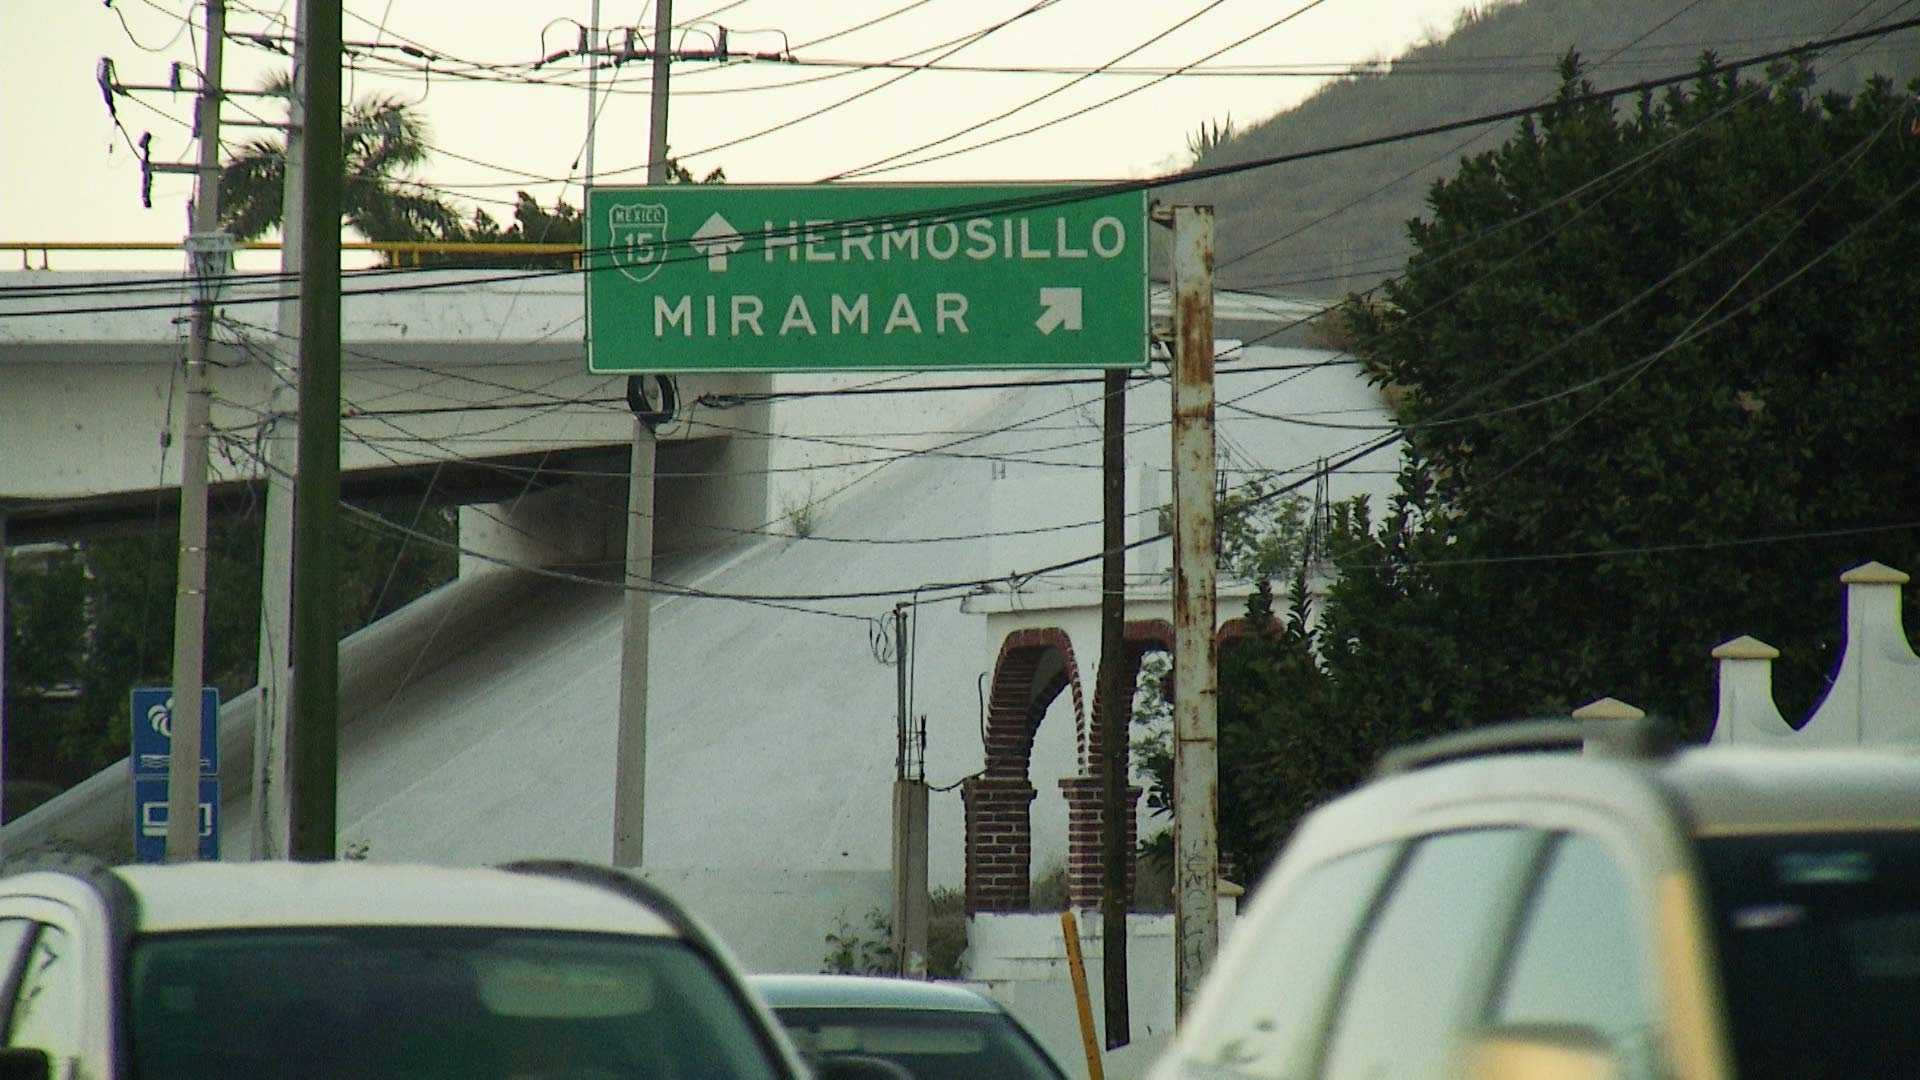 File photo of a highway sign to Hermosillo, Mexico.